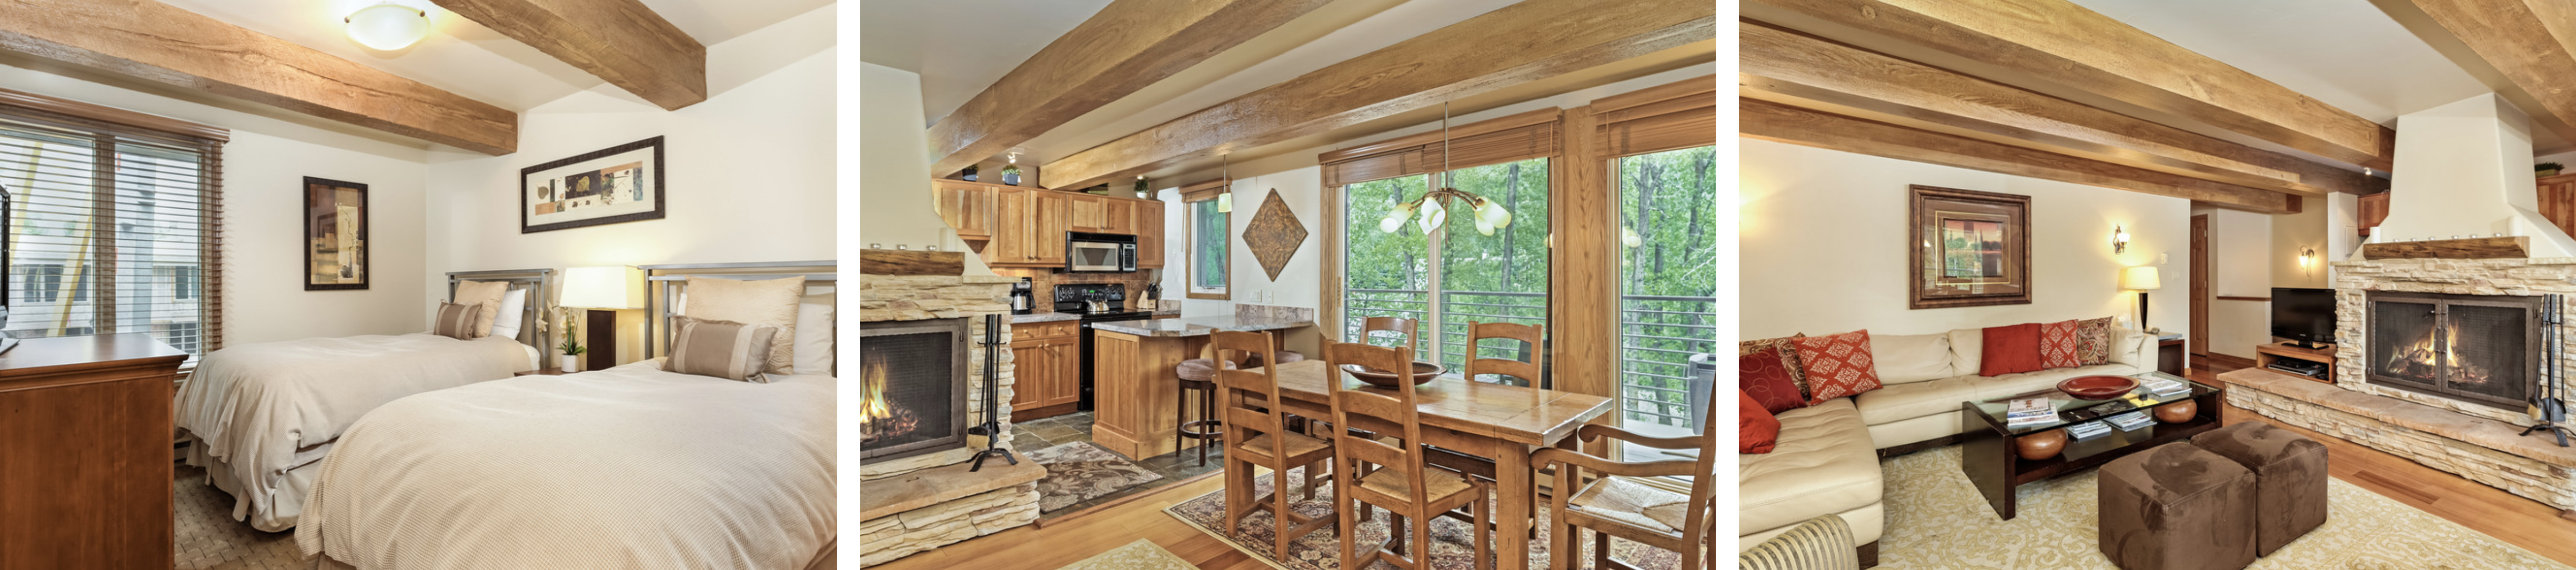 Chateau Roaring Fork 22 aspen vacation rental Frias properties